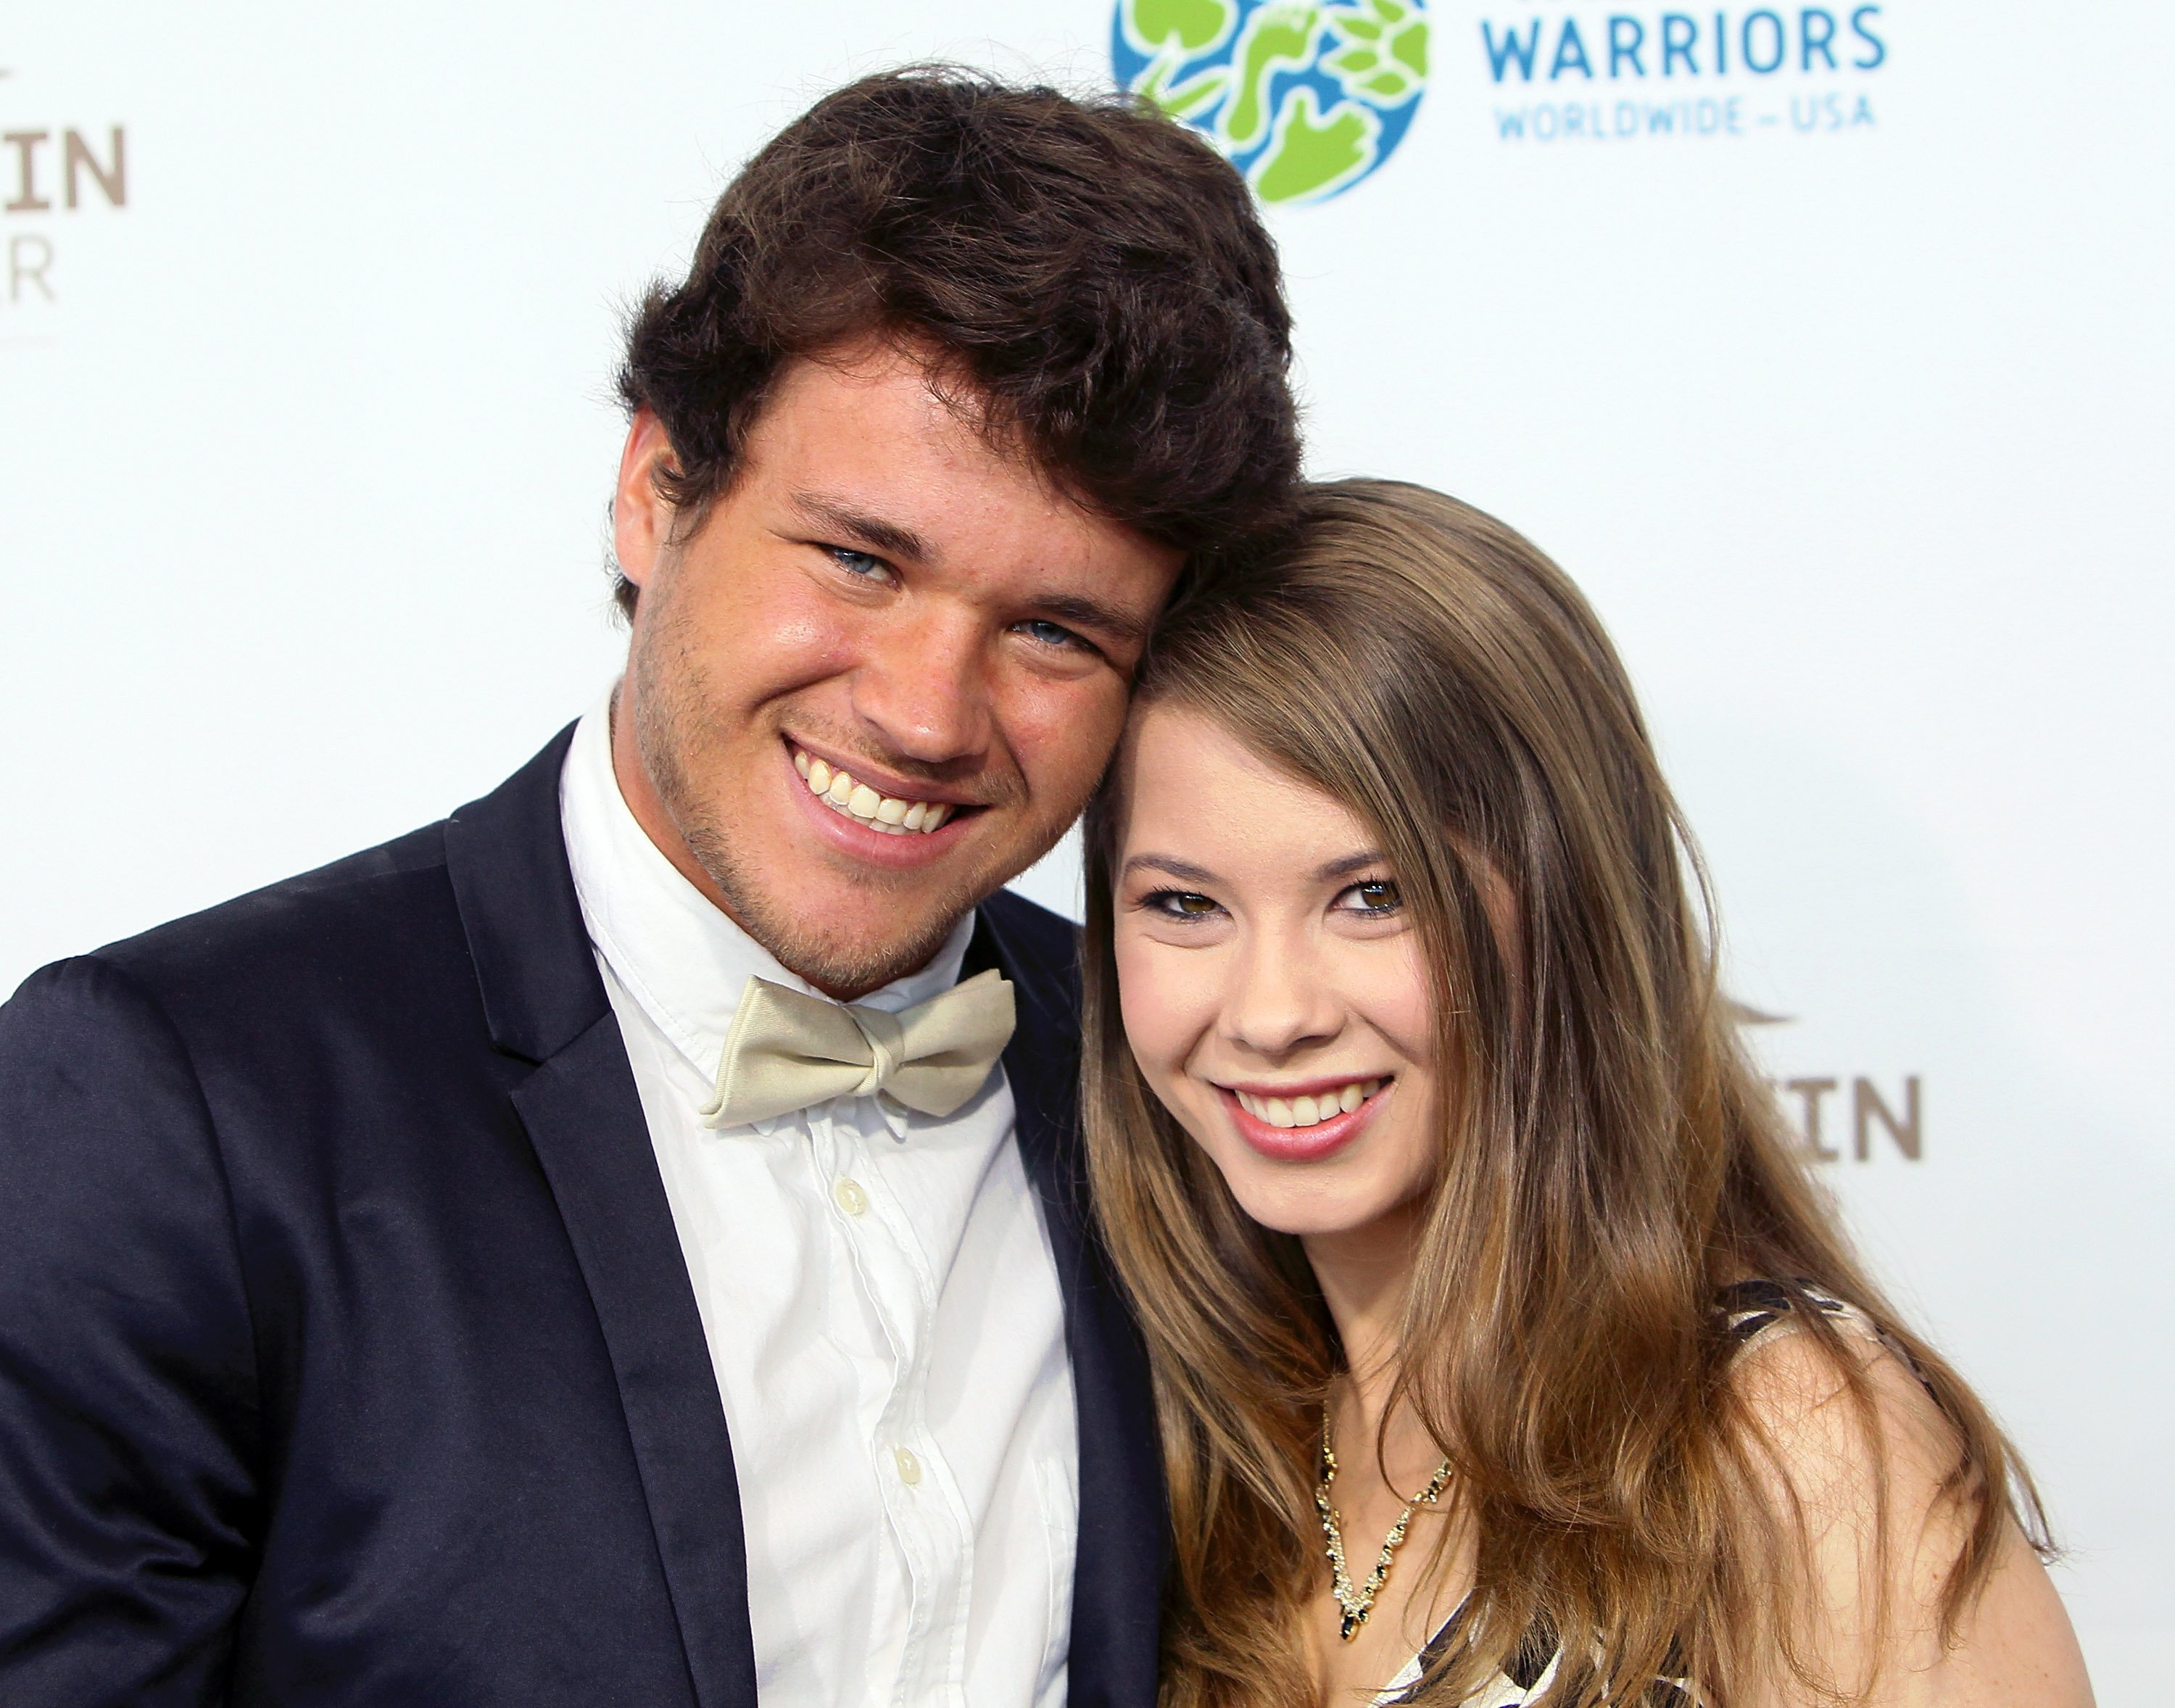 Chandler Powell and Bindi Irwin attend the Steve Irwin Gala Dinner at JW Marriott Los Angeles at L.A. LIVE on May 21, 2016 in Los Angeles, California | Photo: Getty Images